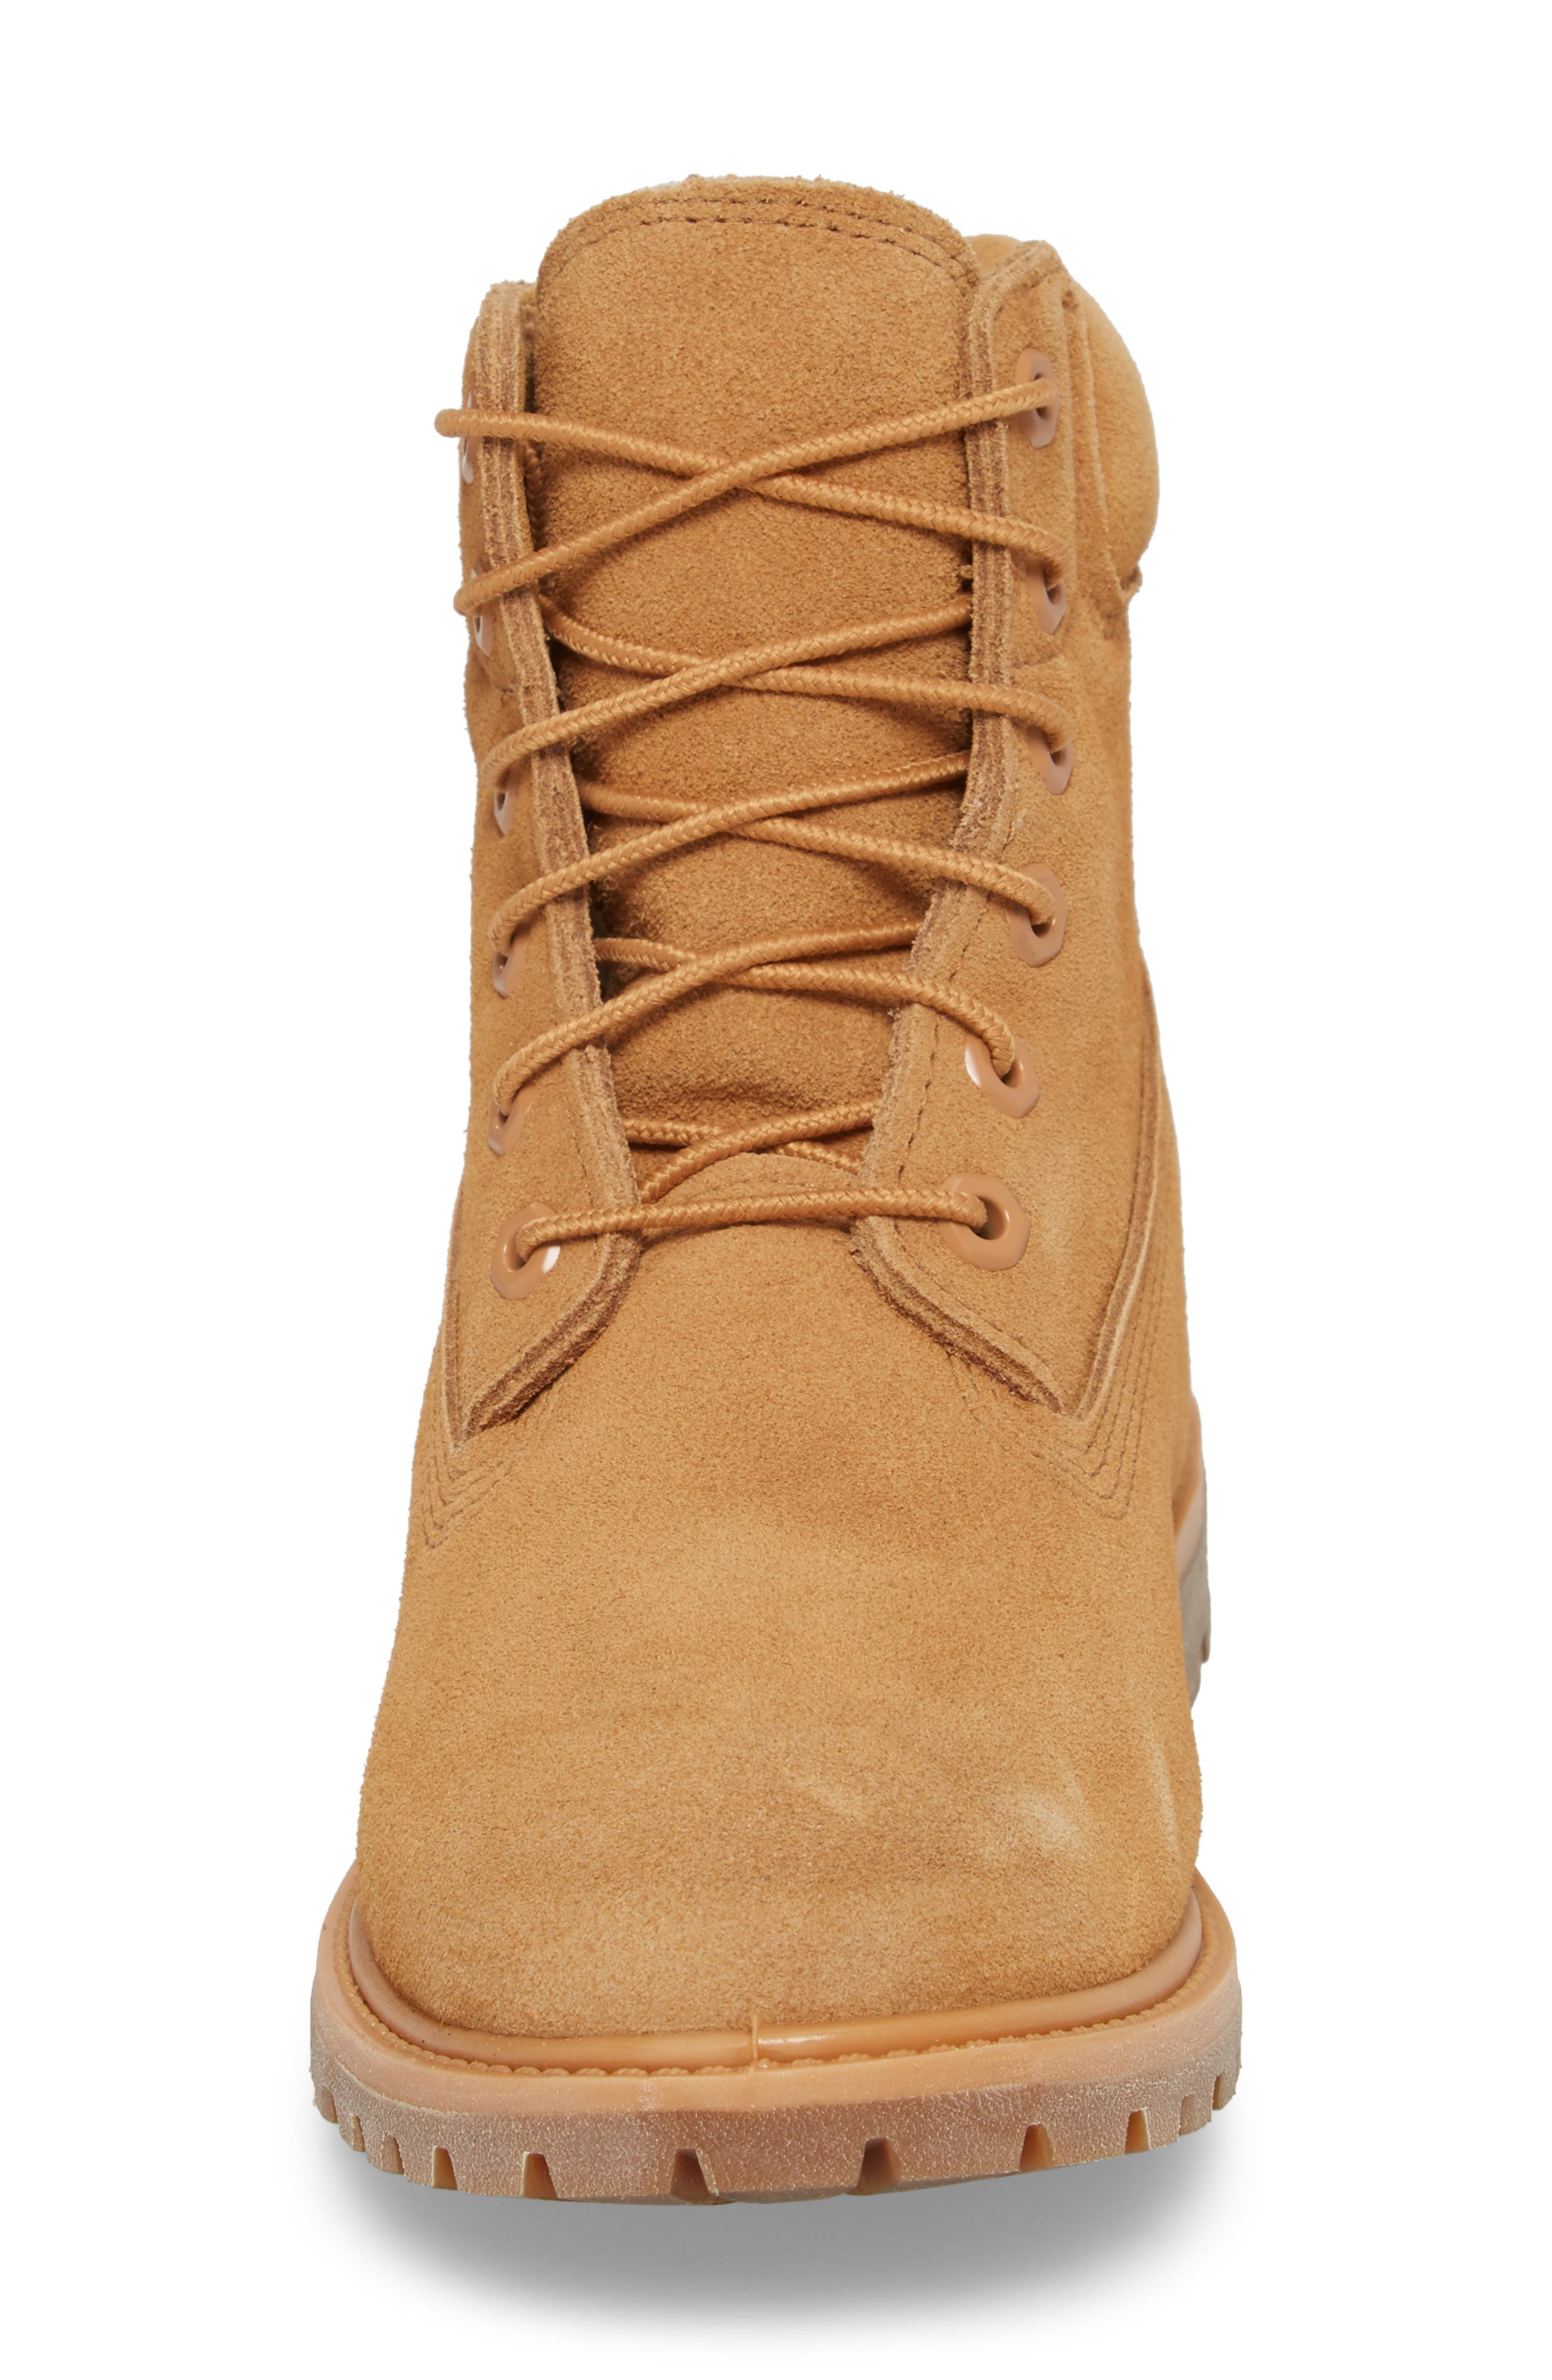 6 Inch Boot,                             Alternate thumbnail 4, color,                             Biscuit Nubuck Leather